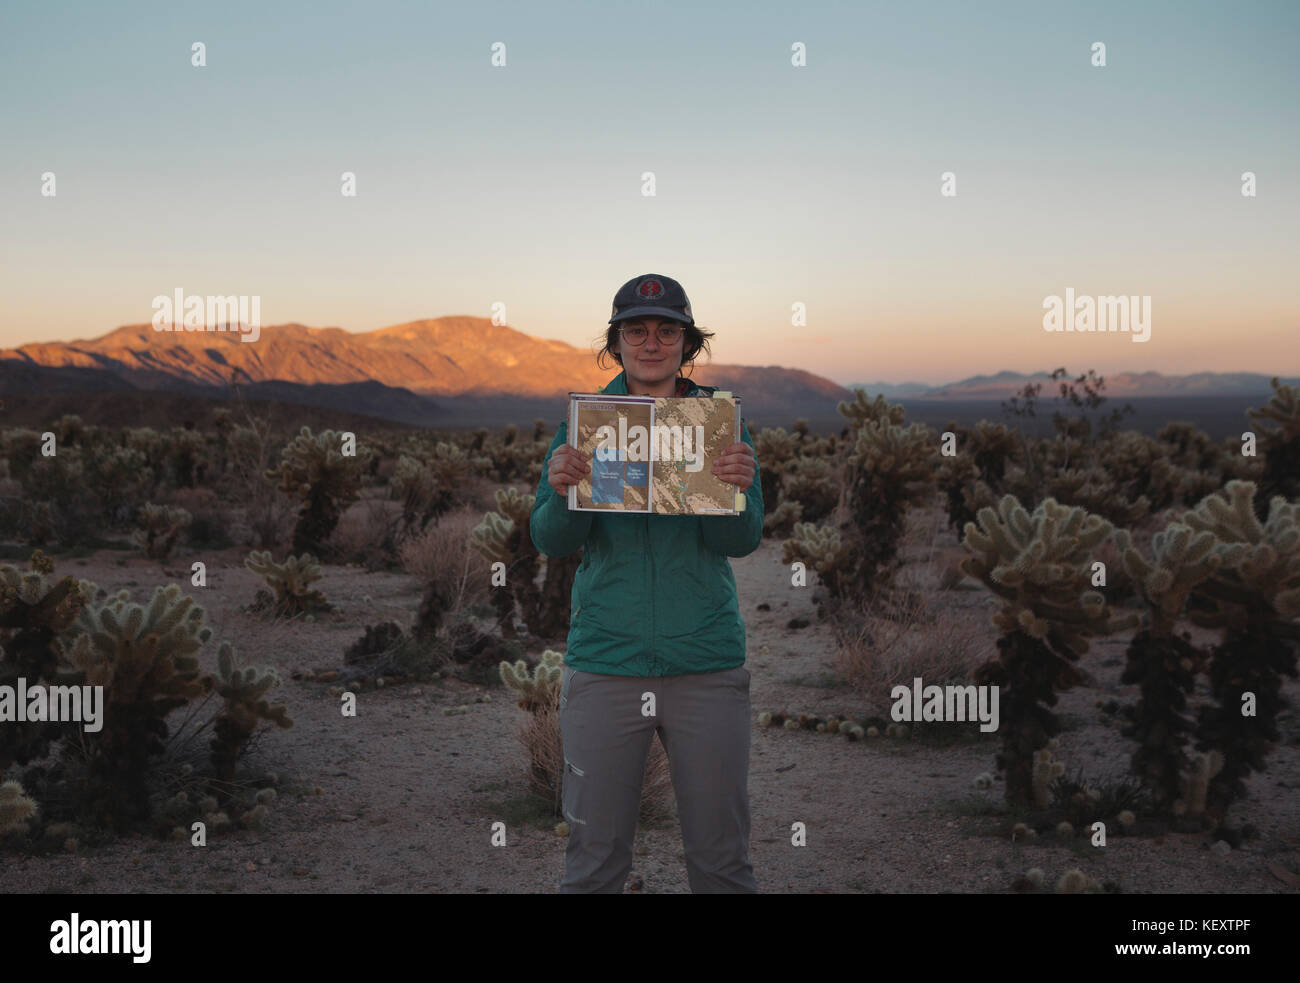 Portrait of woman standing in Chollah Cactus Garden and holding guidebook, California, USA Stock Photo